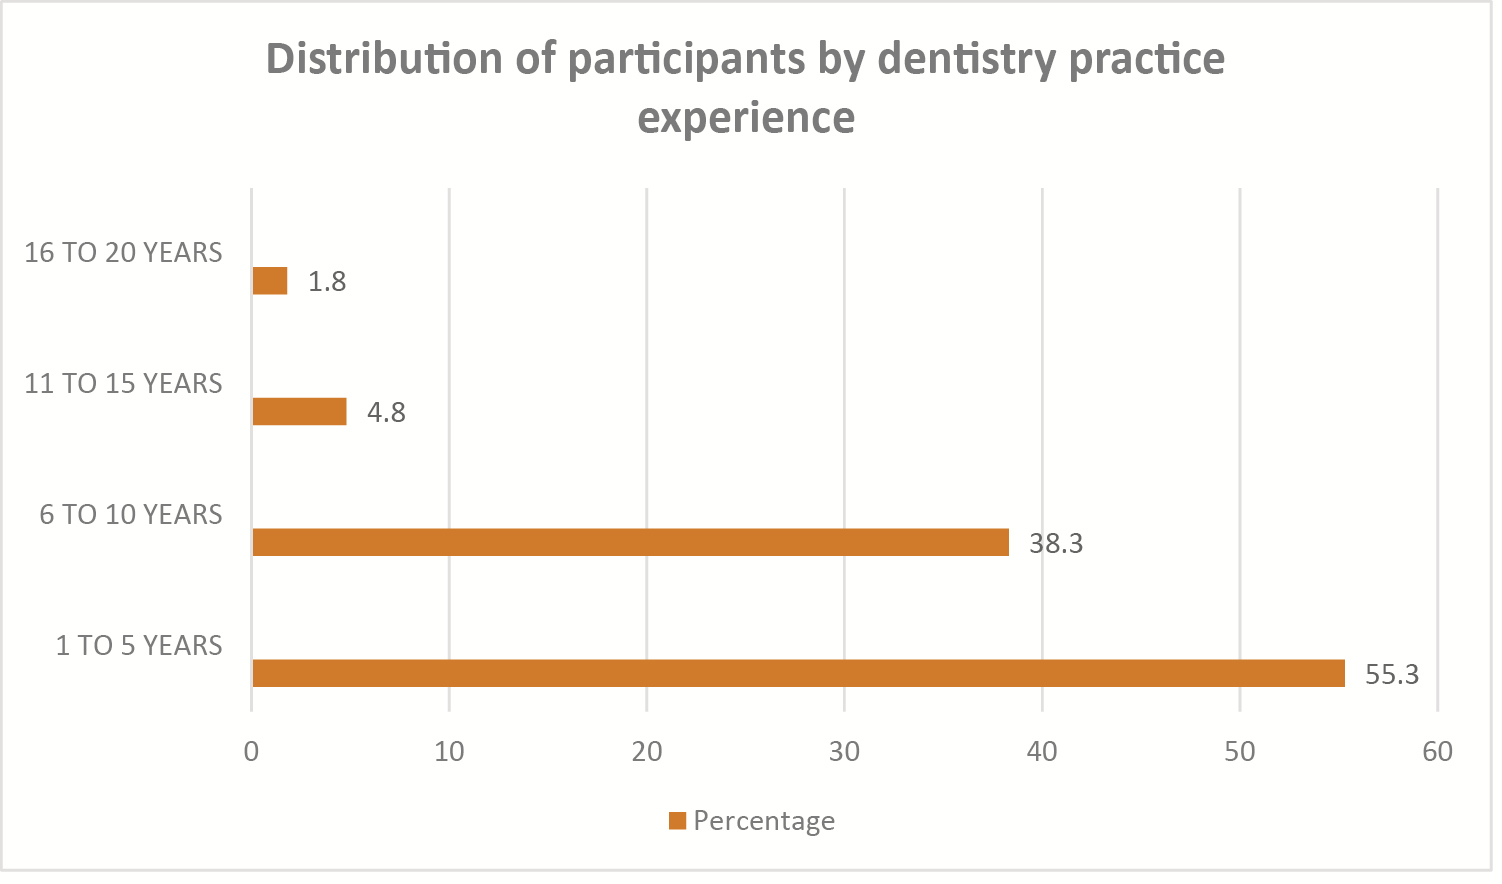 Figure 5: Distribution of participants by dentistry practice experience